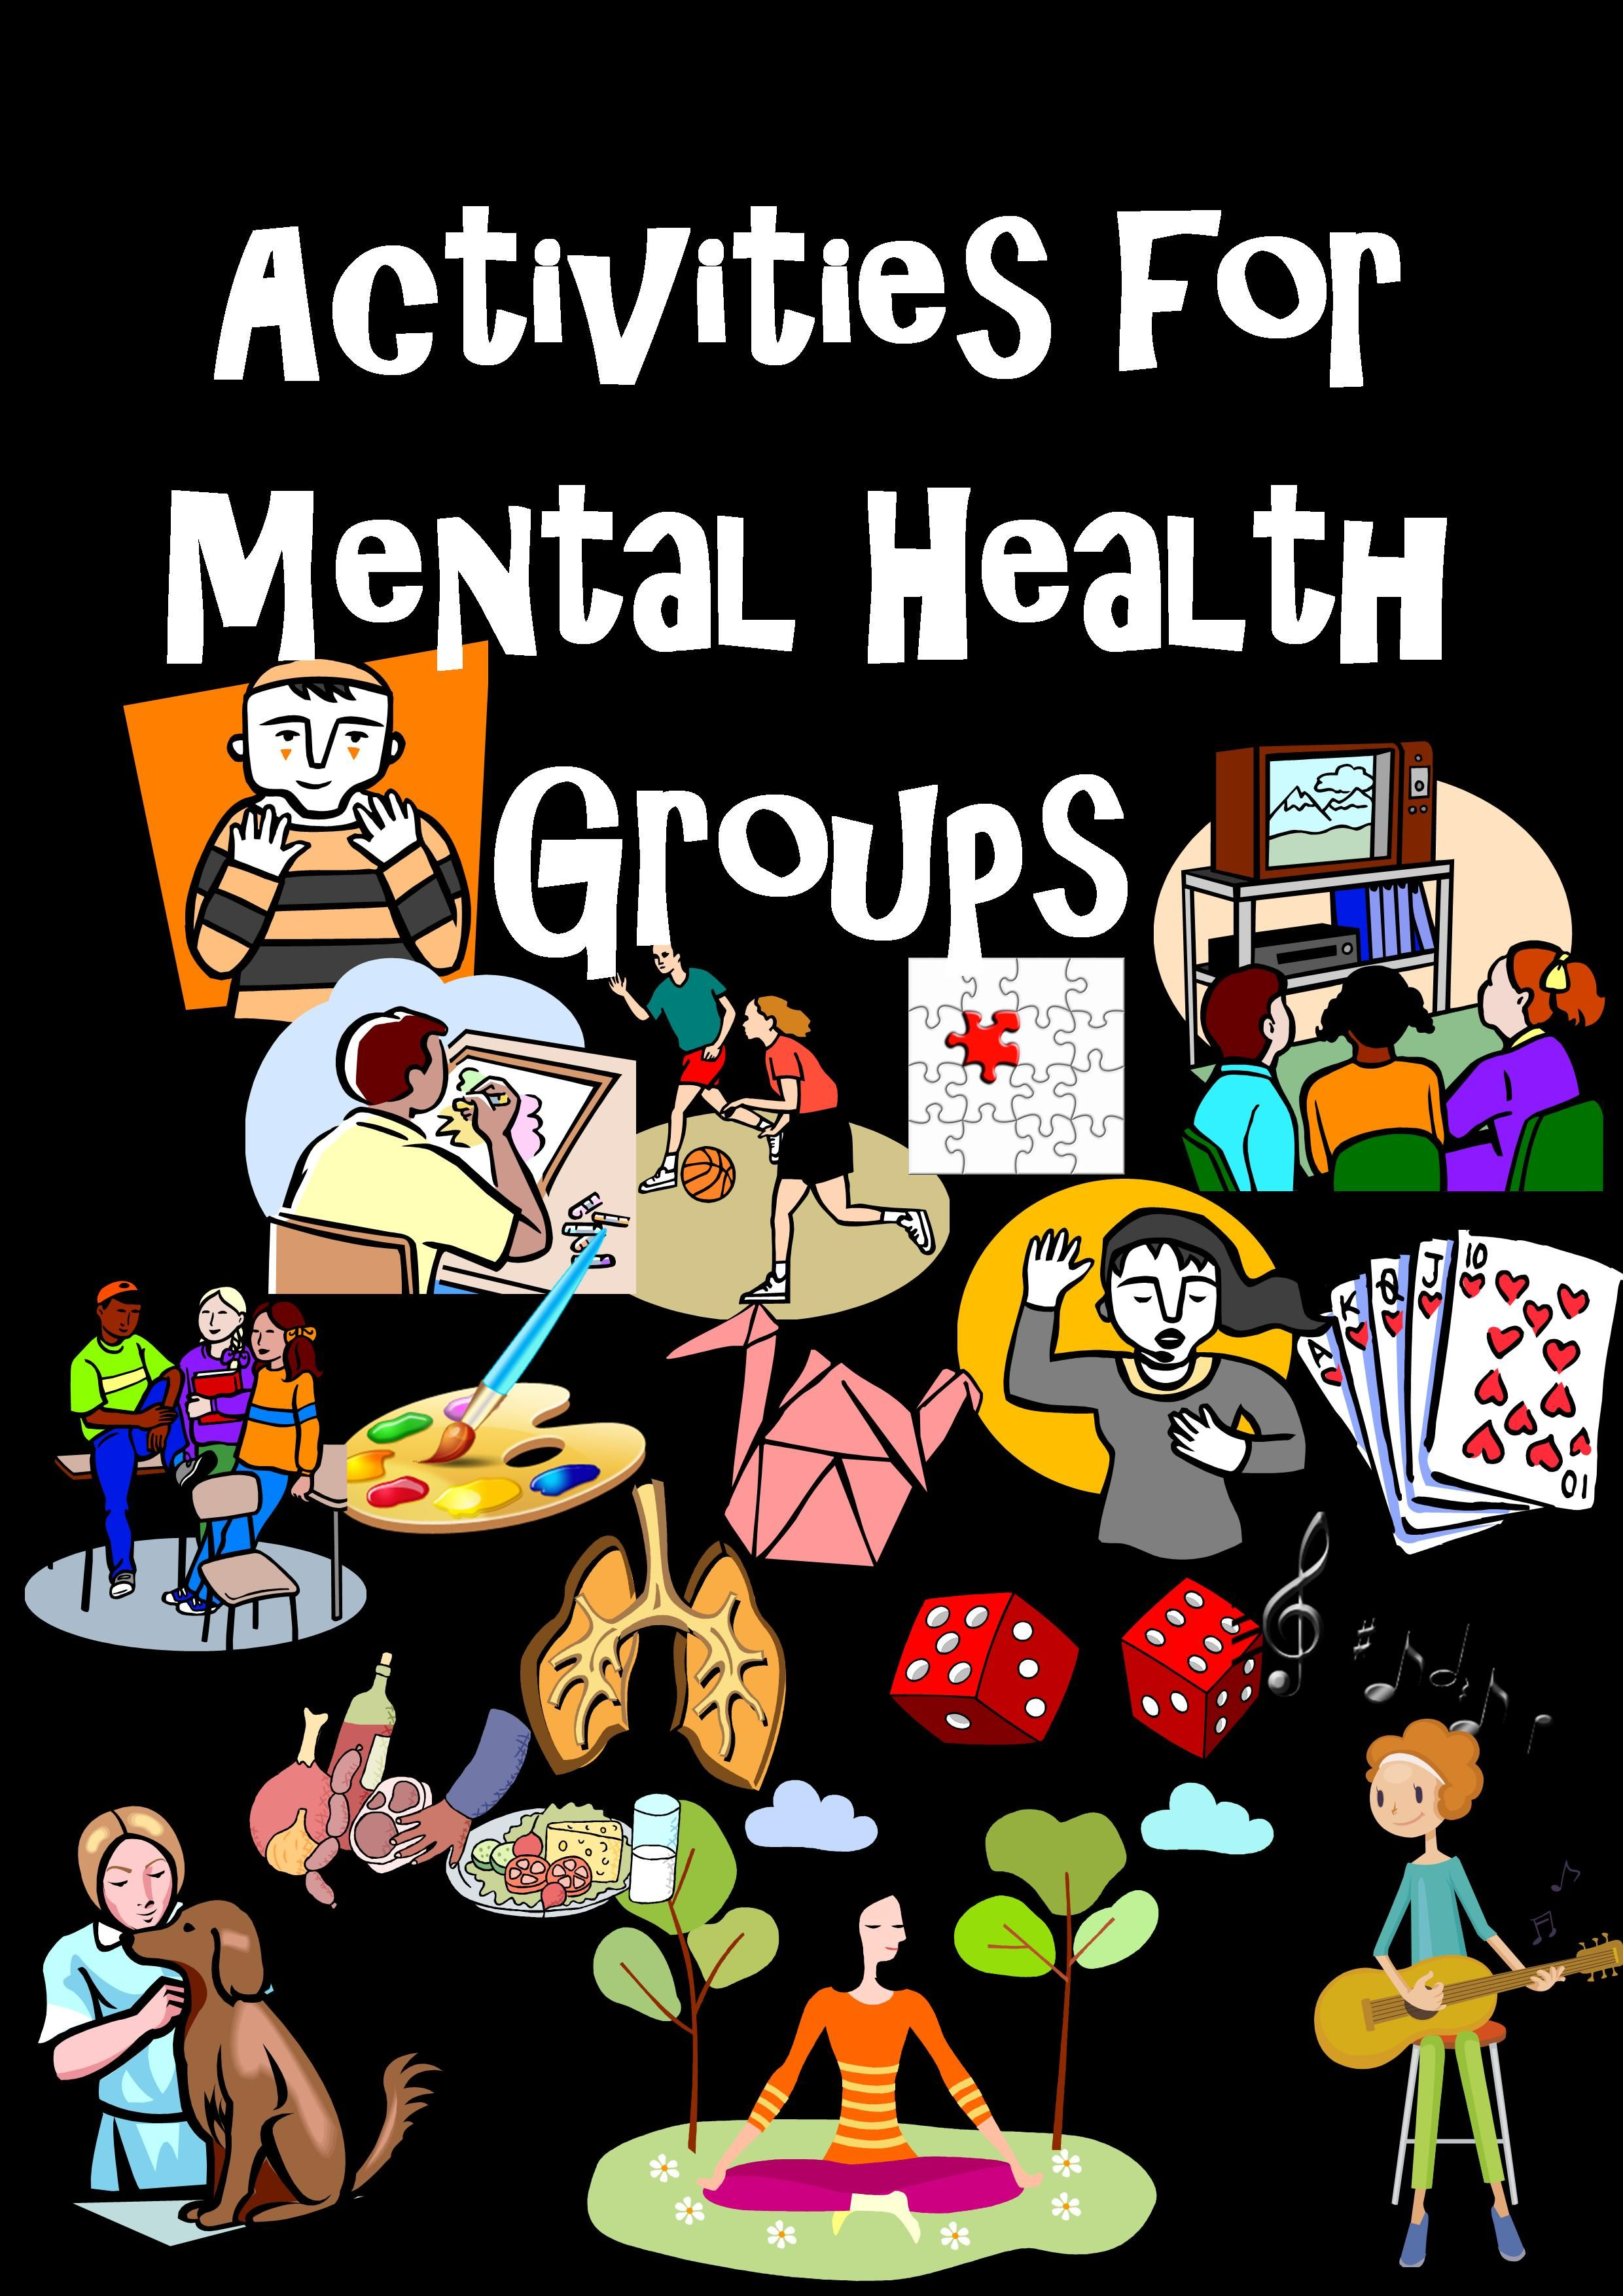 Group activities painting emotions adult groups were